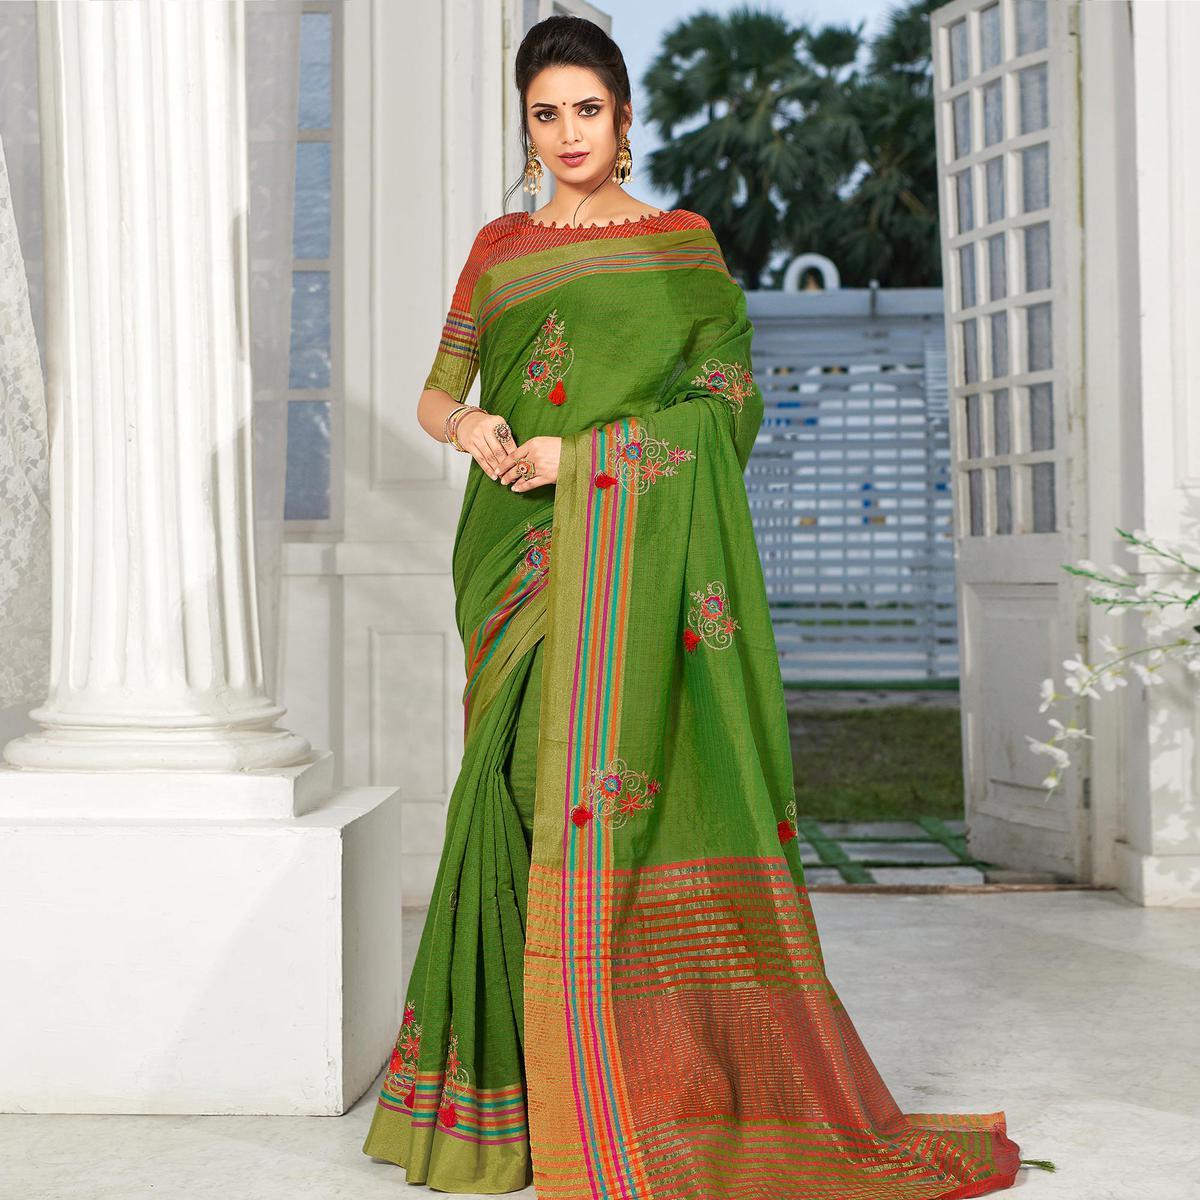 Glowing Green Colored Party Wear Embroidered Cotton Silk Saree With Tassels